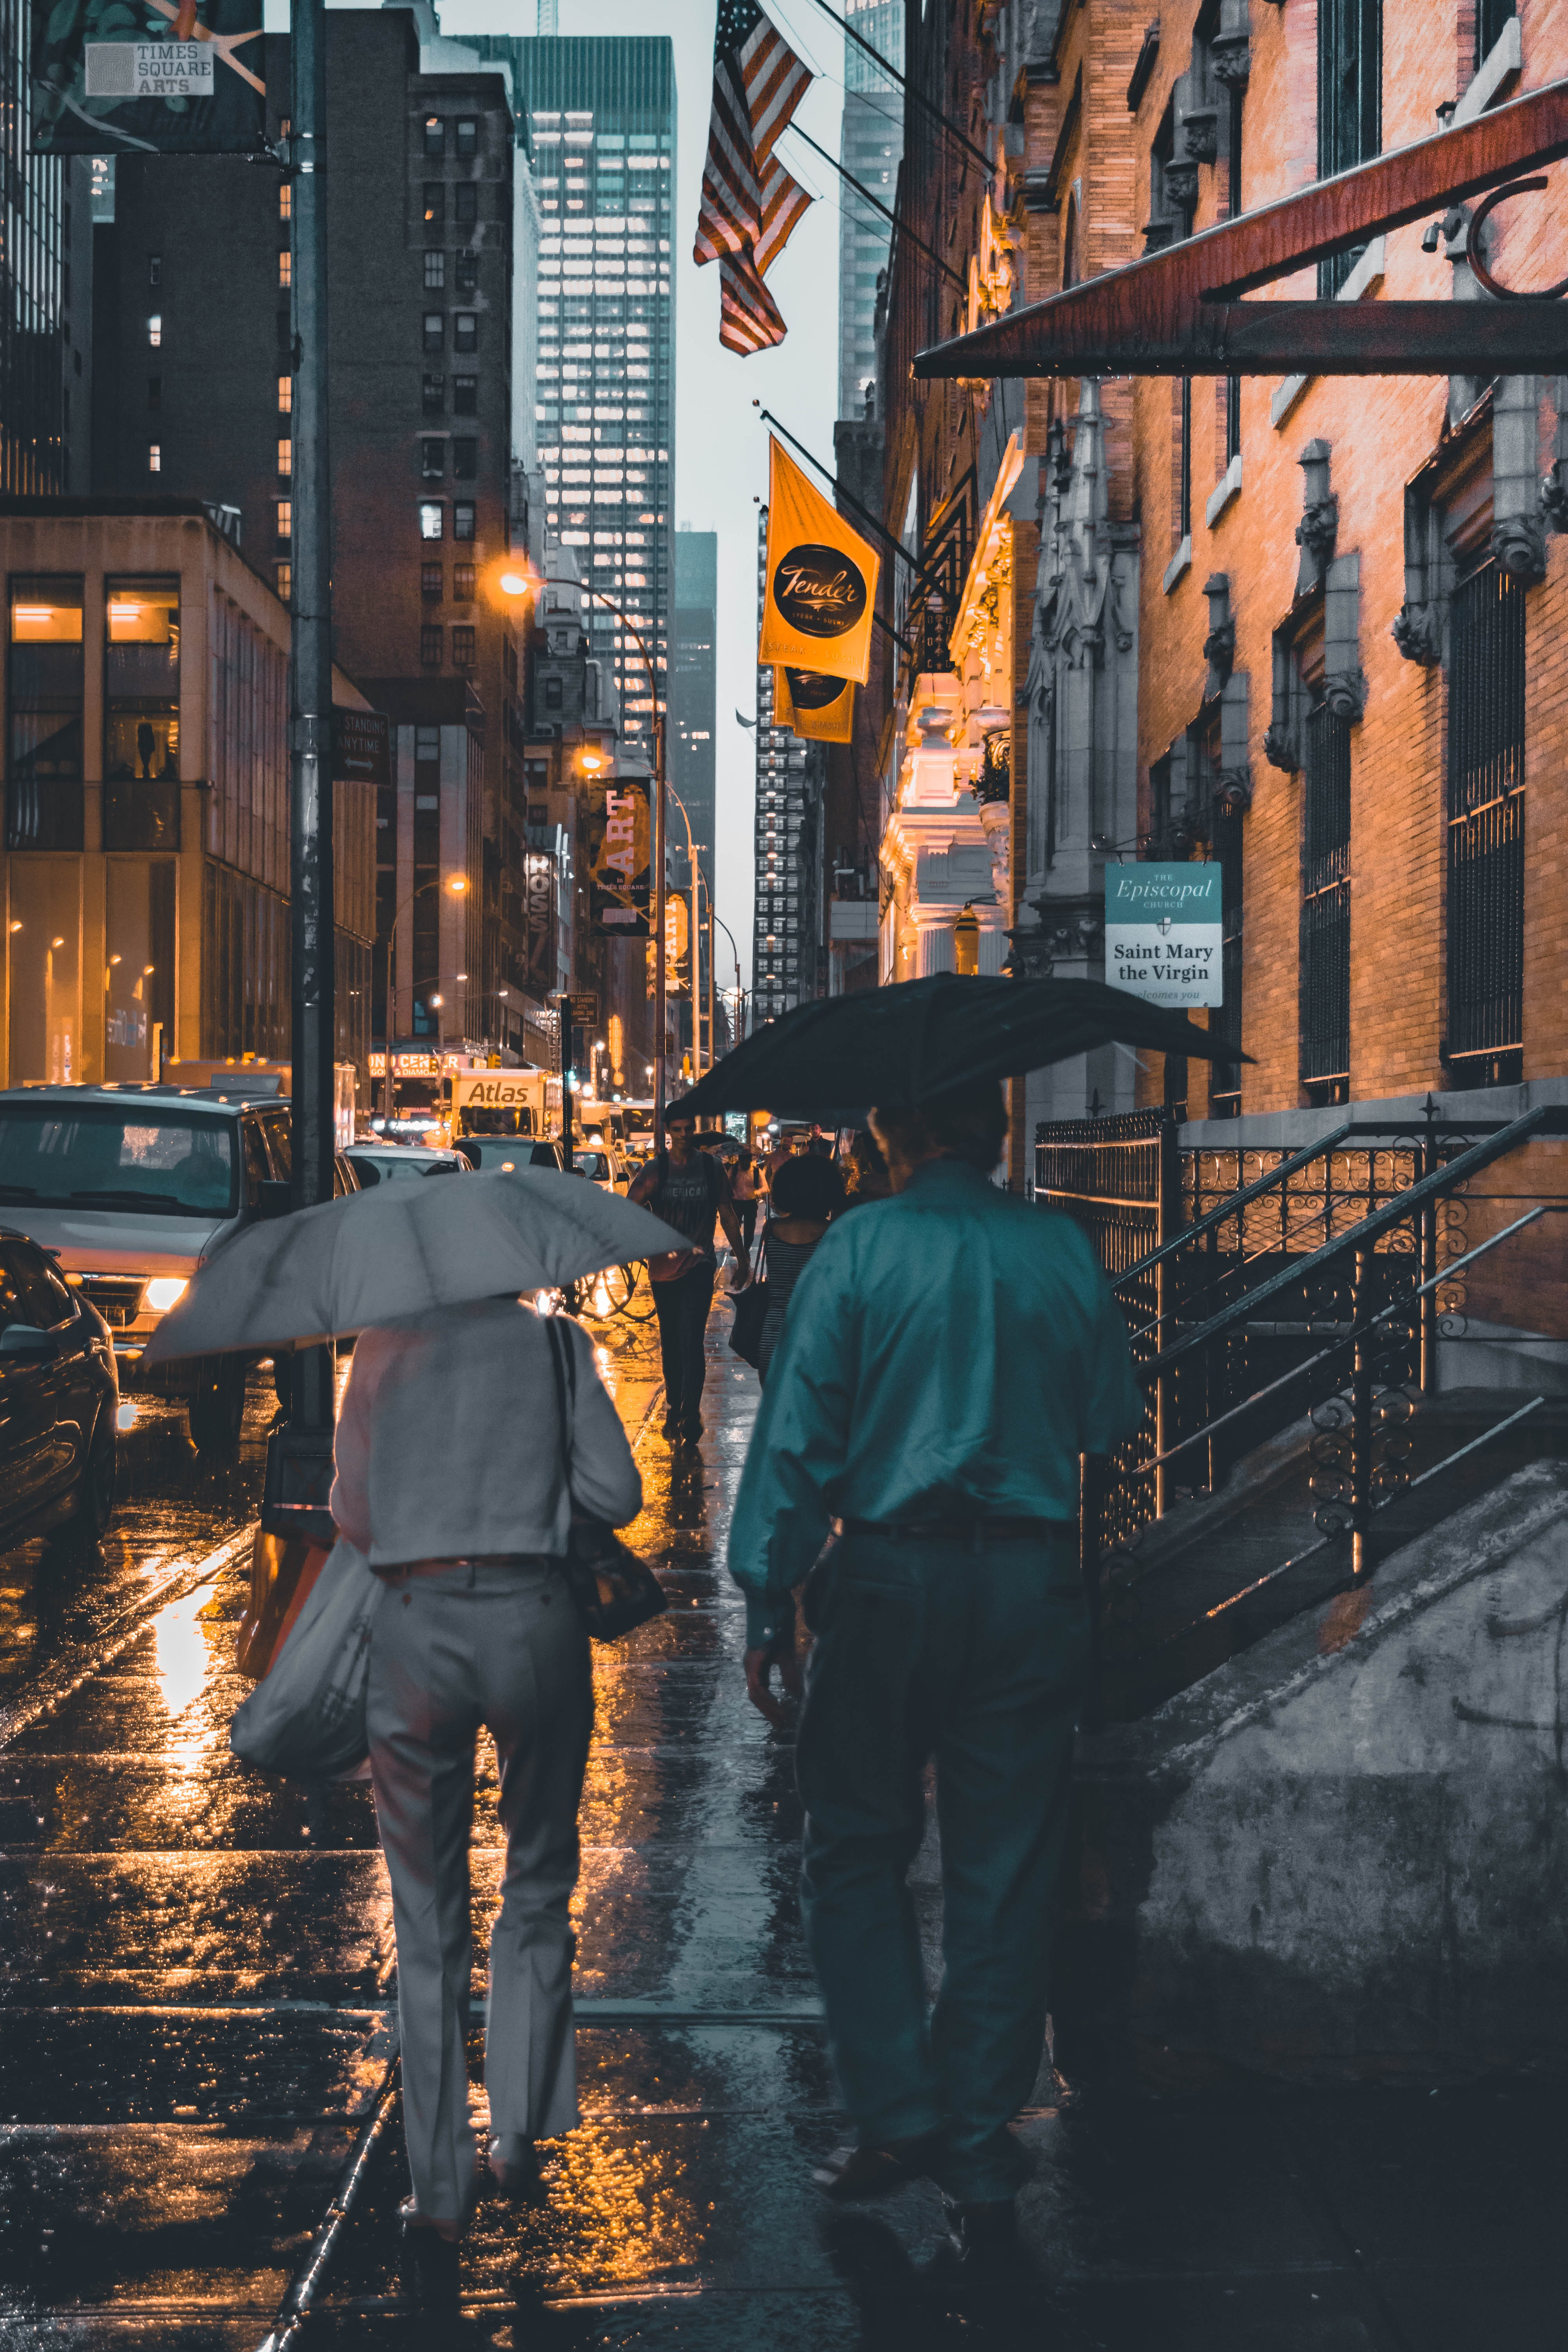 two man and woman walking near each other while holding umbrella during rain near buildings